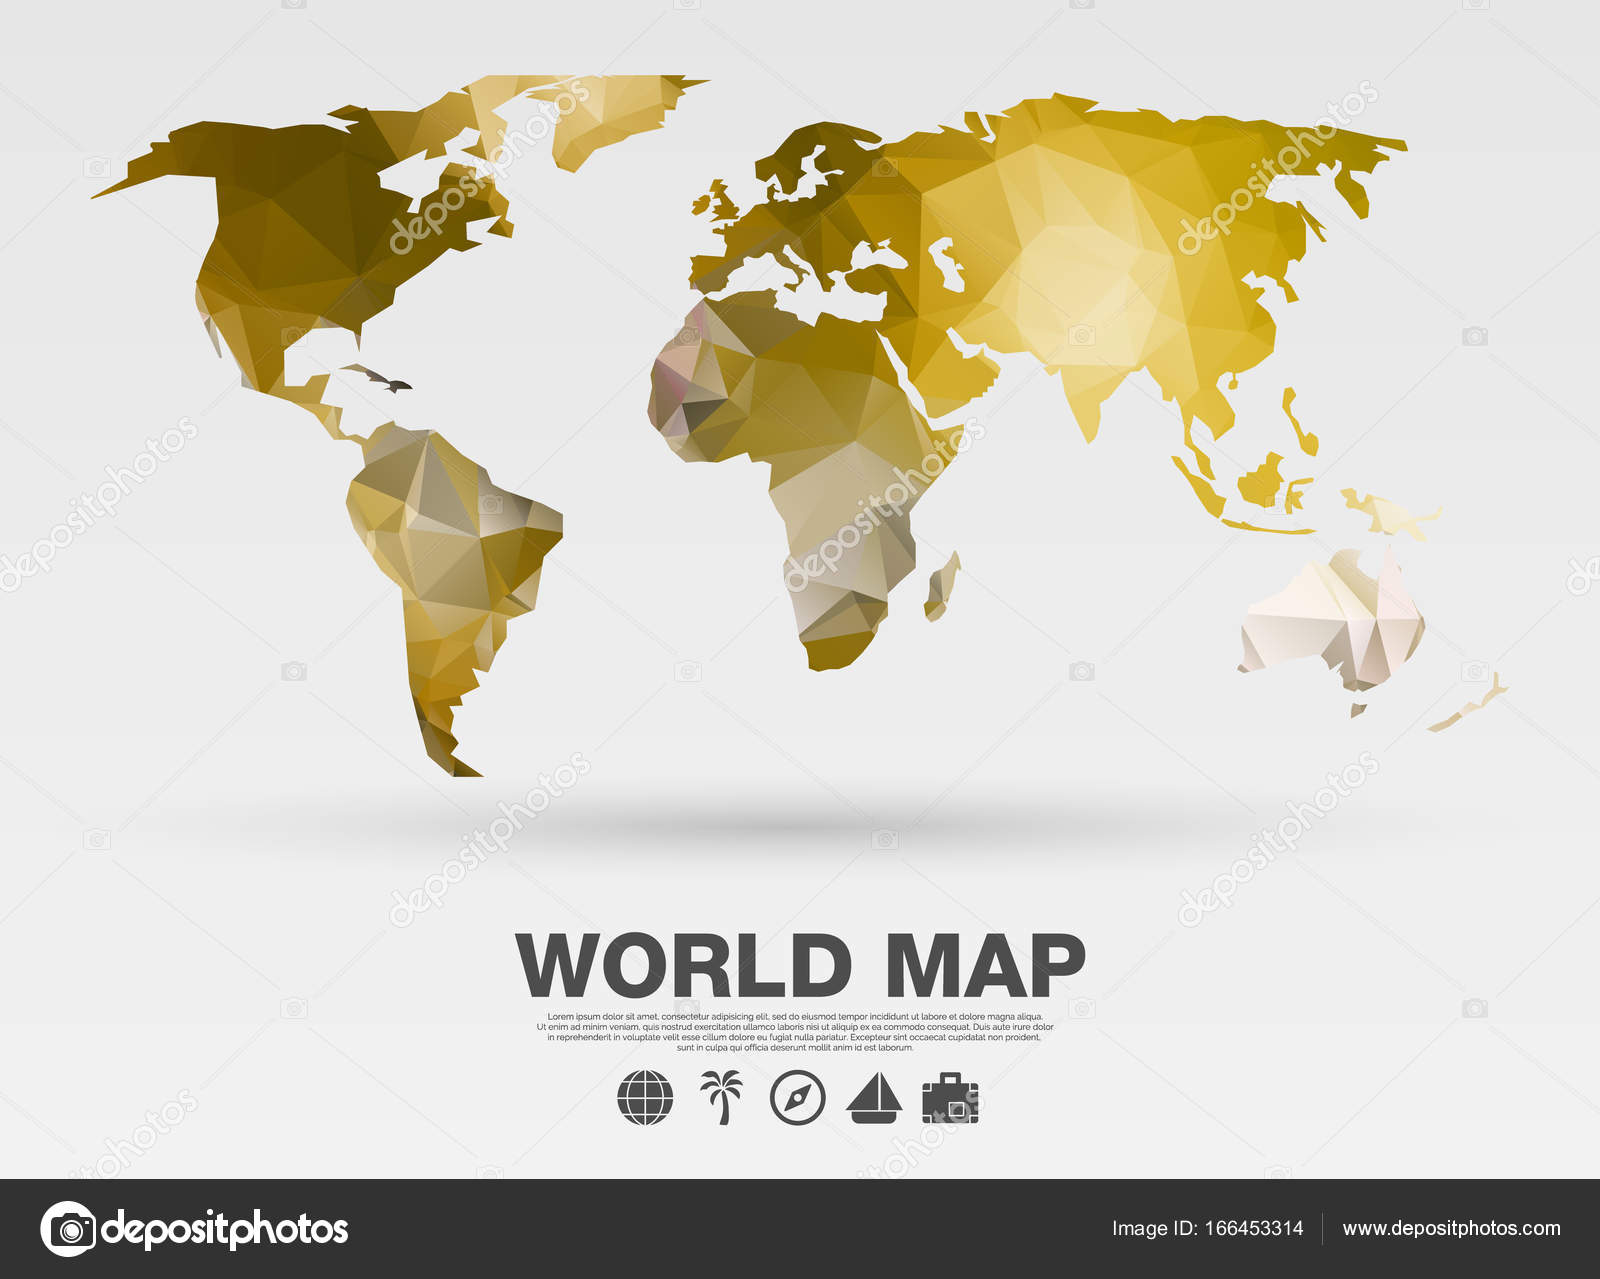 World map background in polygonal style vector background gold world map background in polygonal style vector background gold color stock vector gumiabroncs